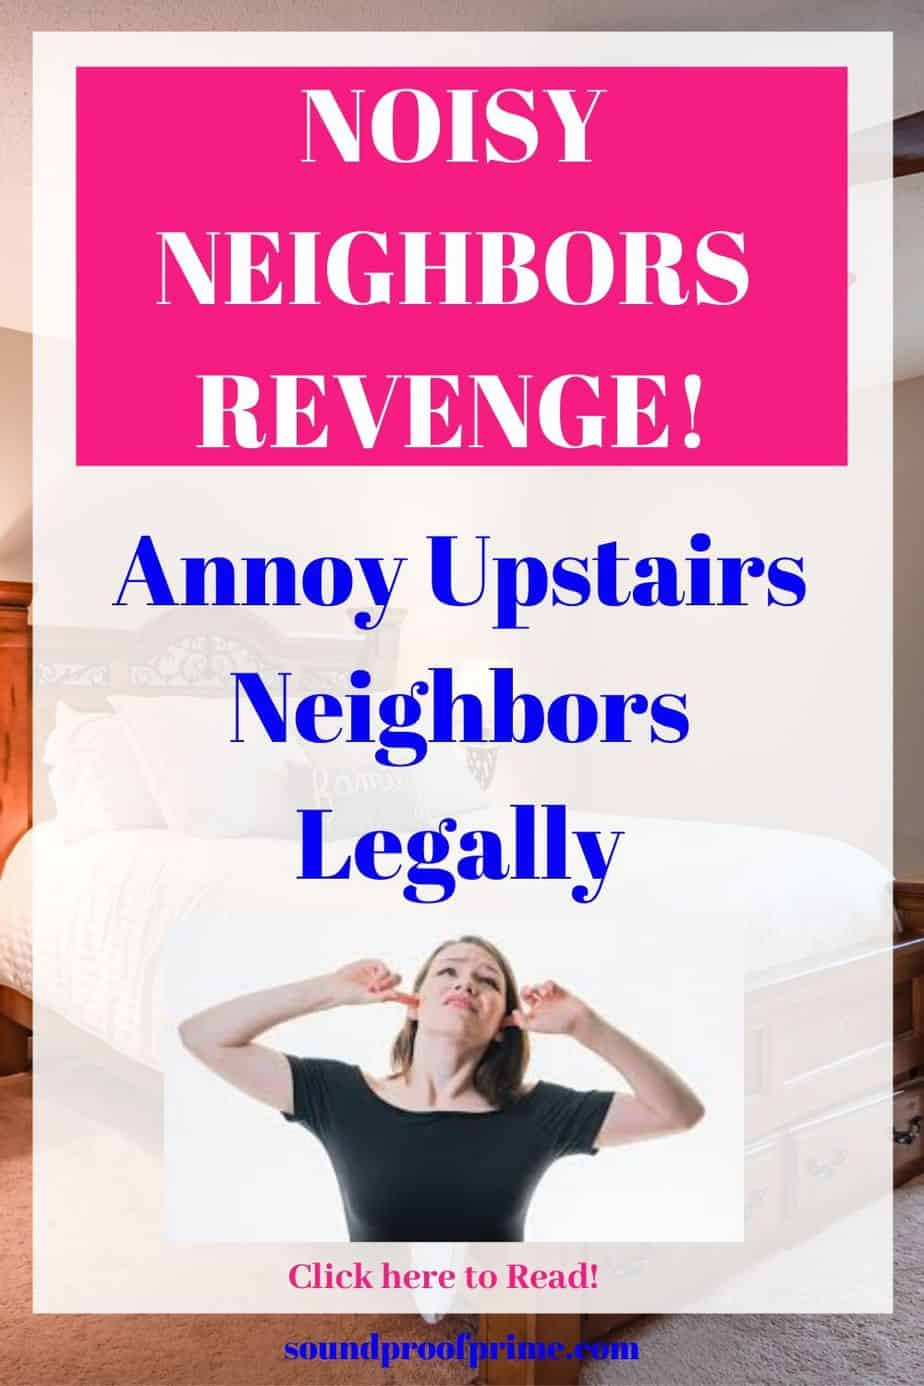 How To Annoy Upstairs Neighbors Legally